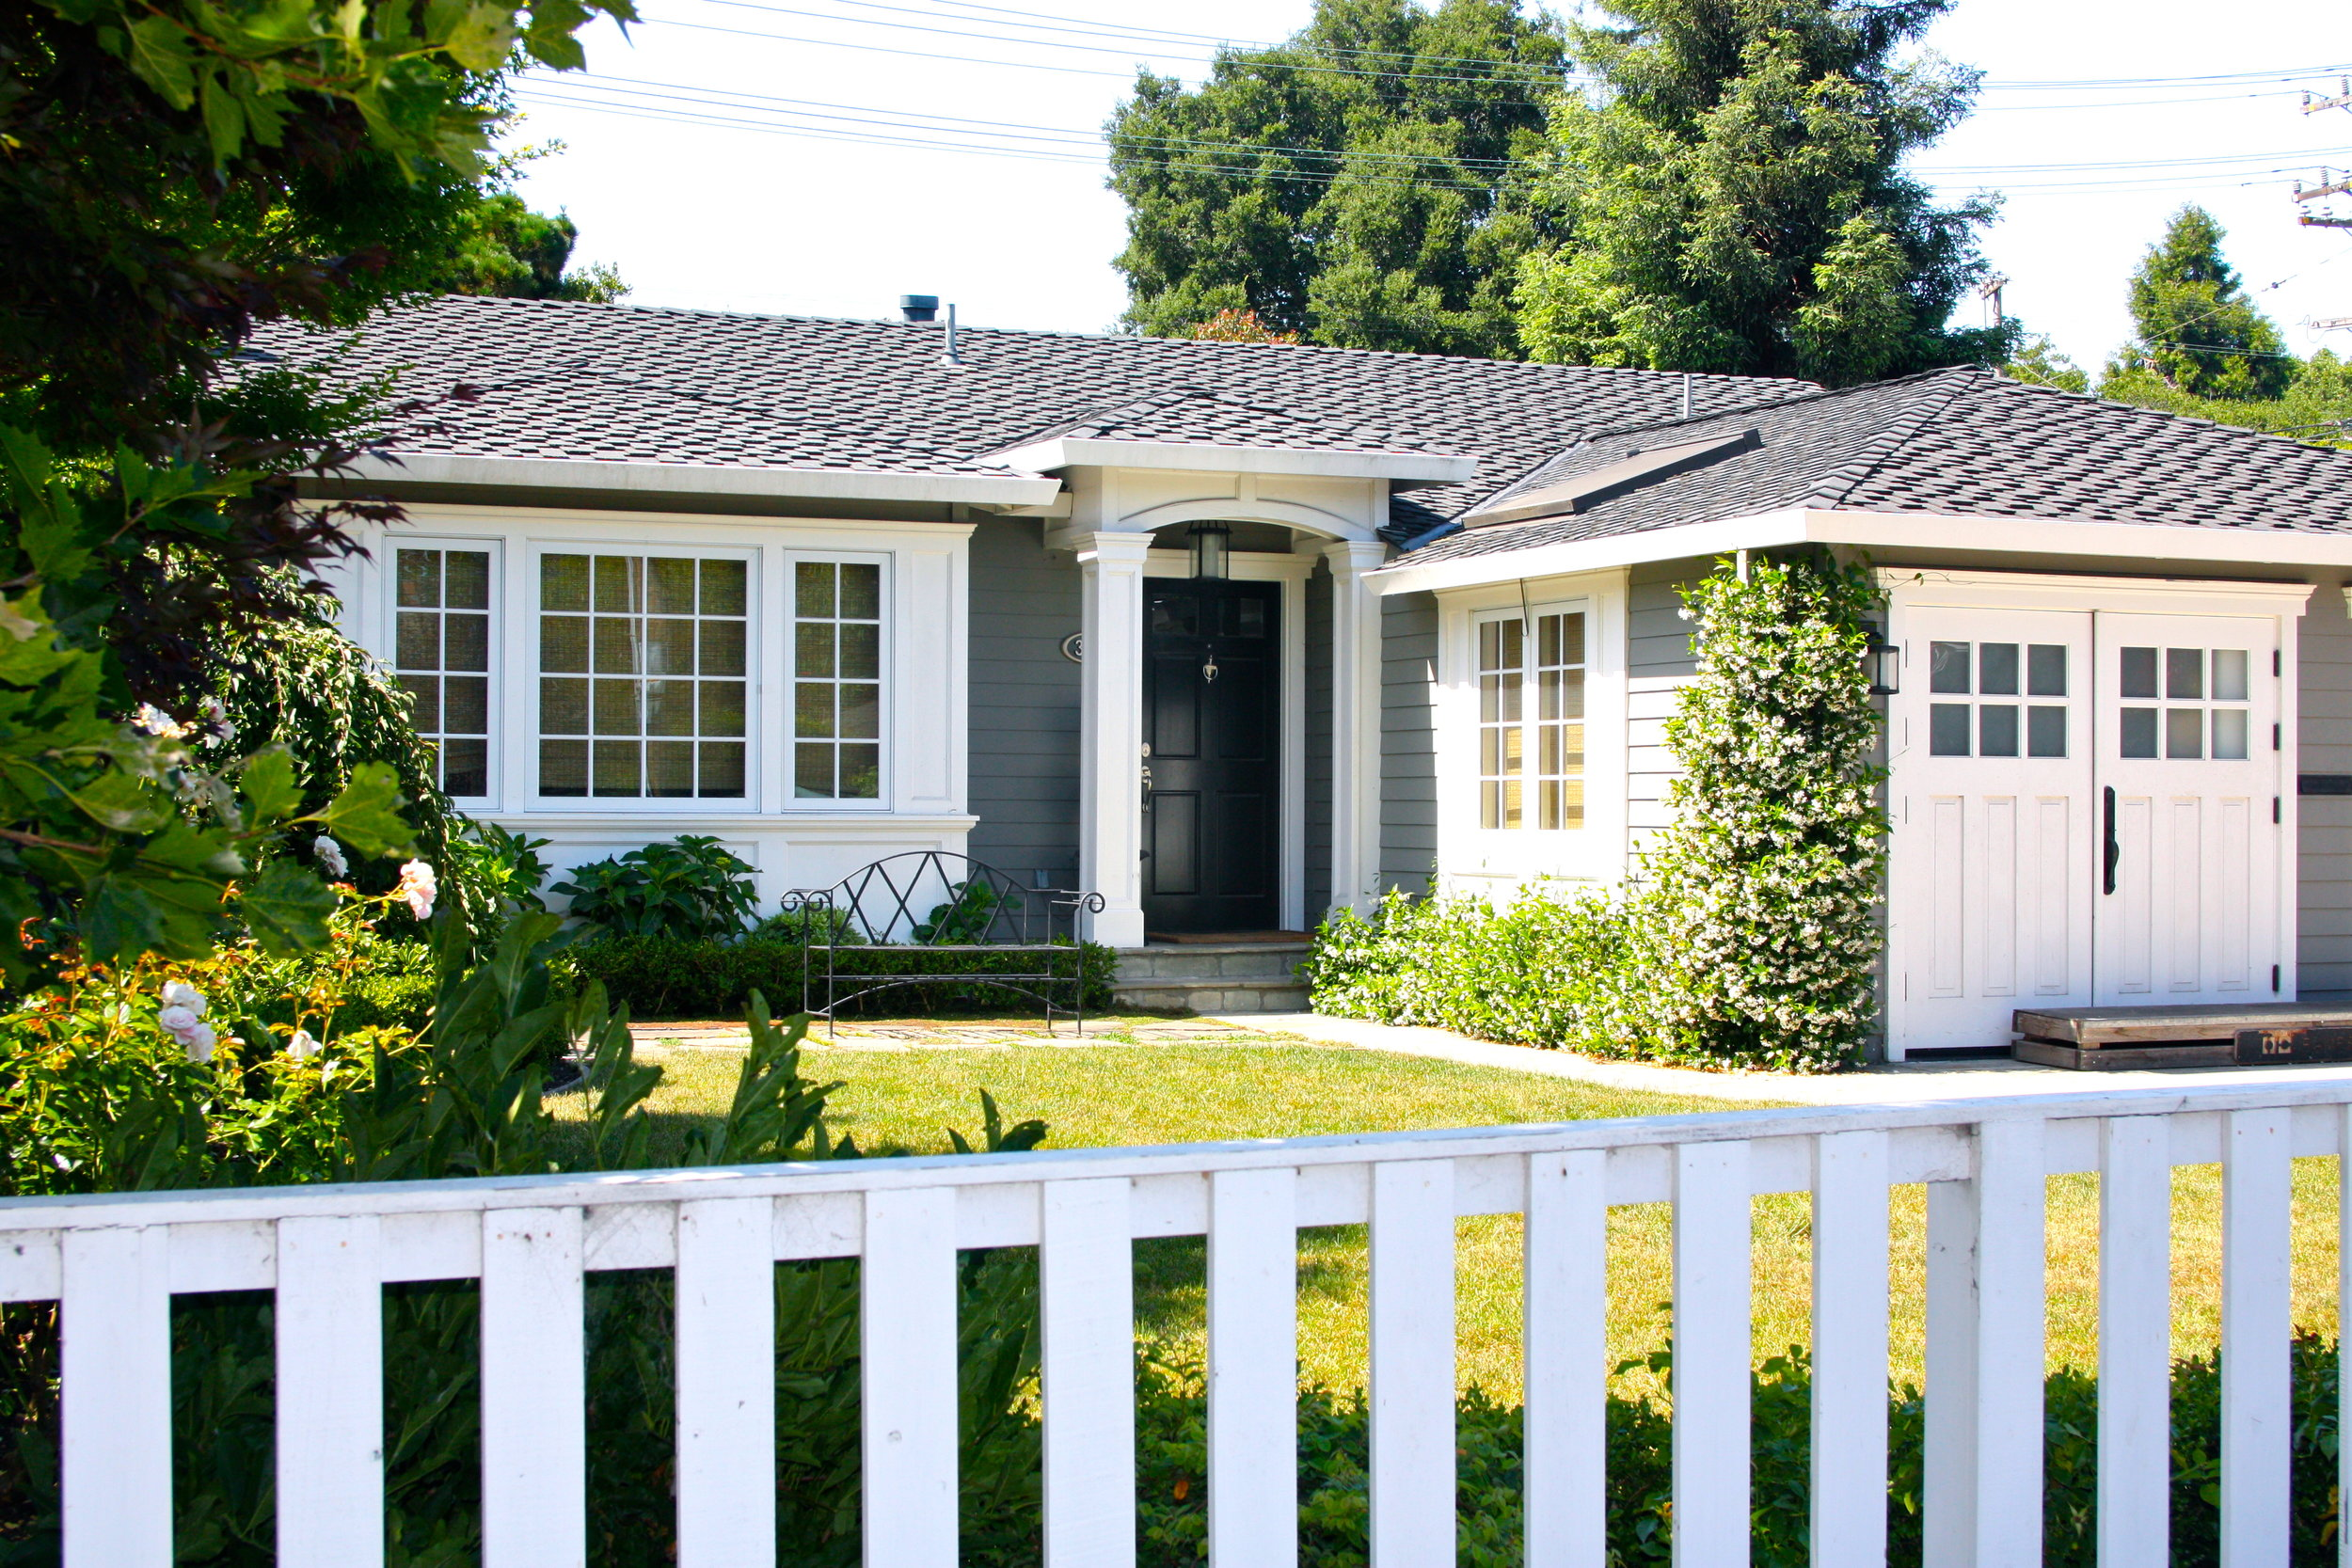 SOLD: 391 Hedge Rd, Menlo Park  Classic elegance in Suburban Park  Offered at $2,100,000 - represented buyer